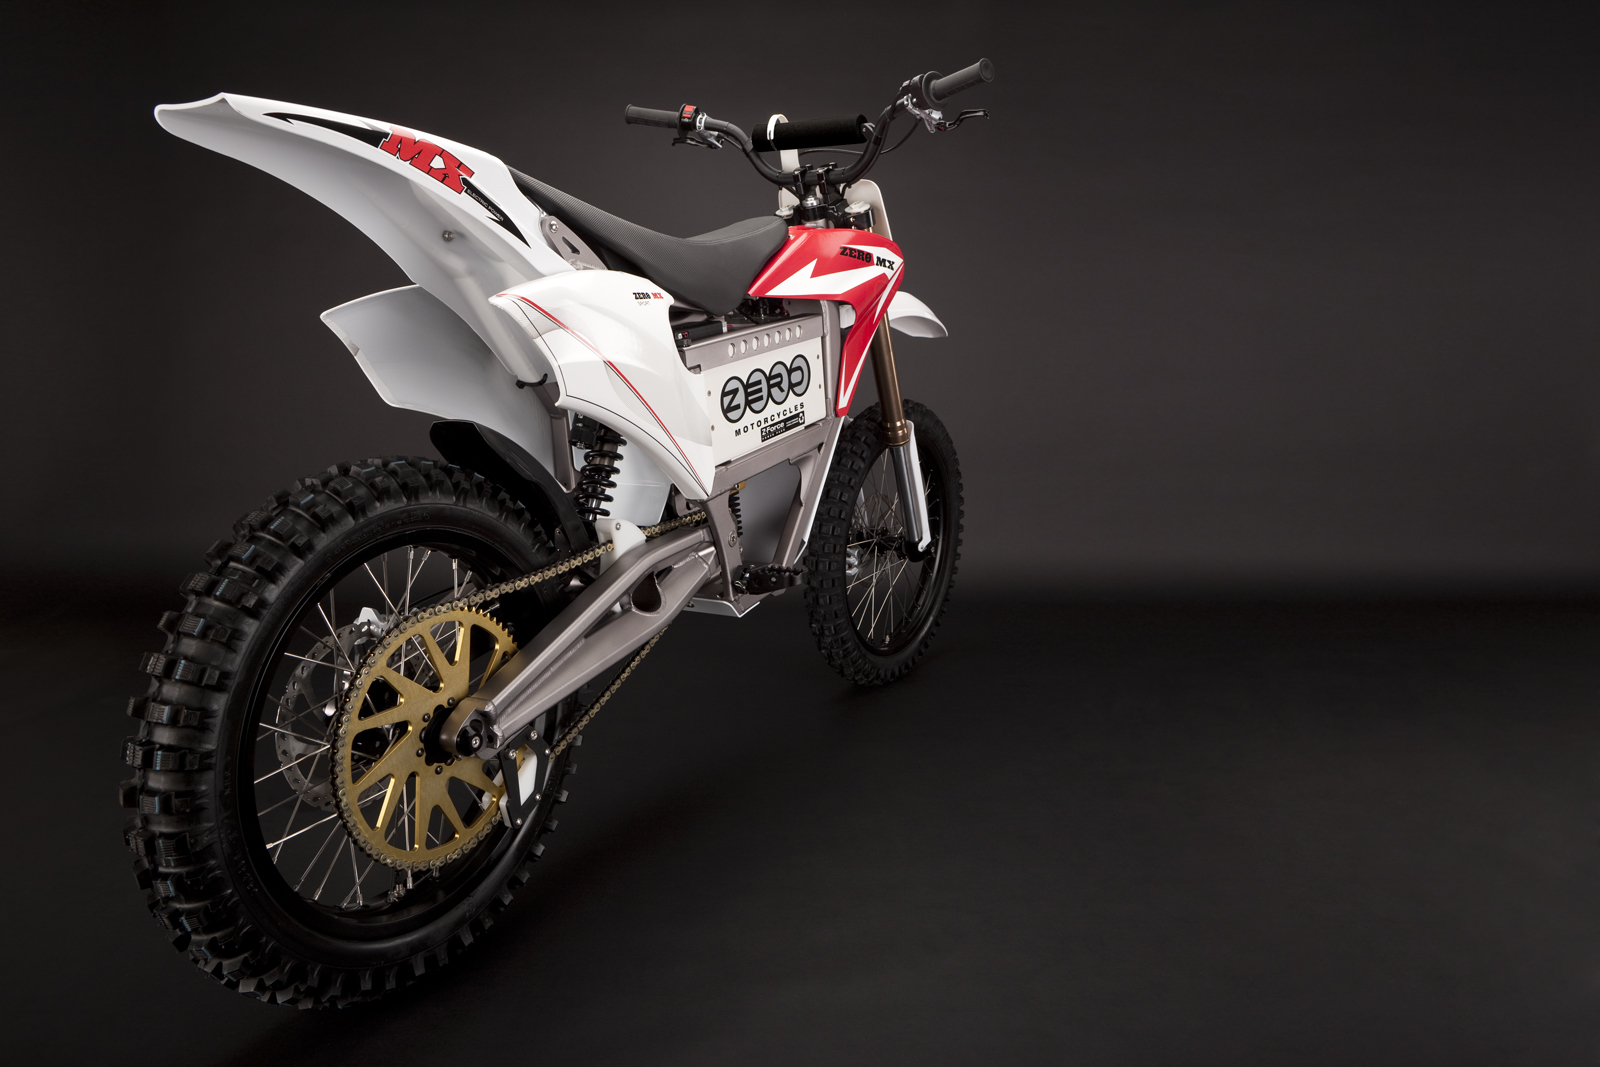 2010 Zero MX Electric Motorcycle: Drivetrain / Chain / Sprocket